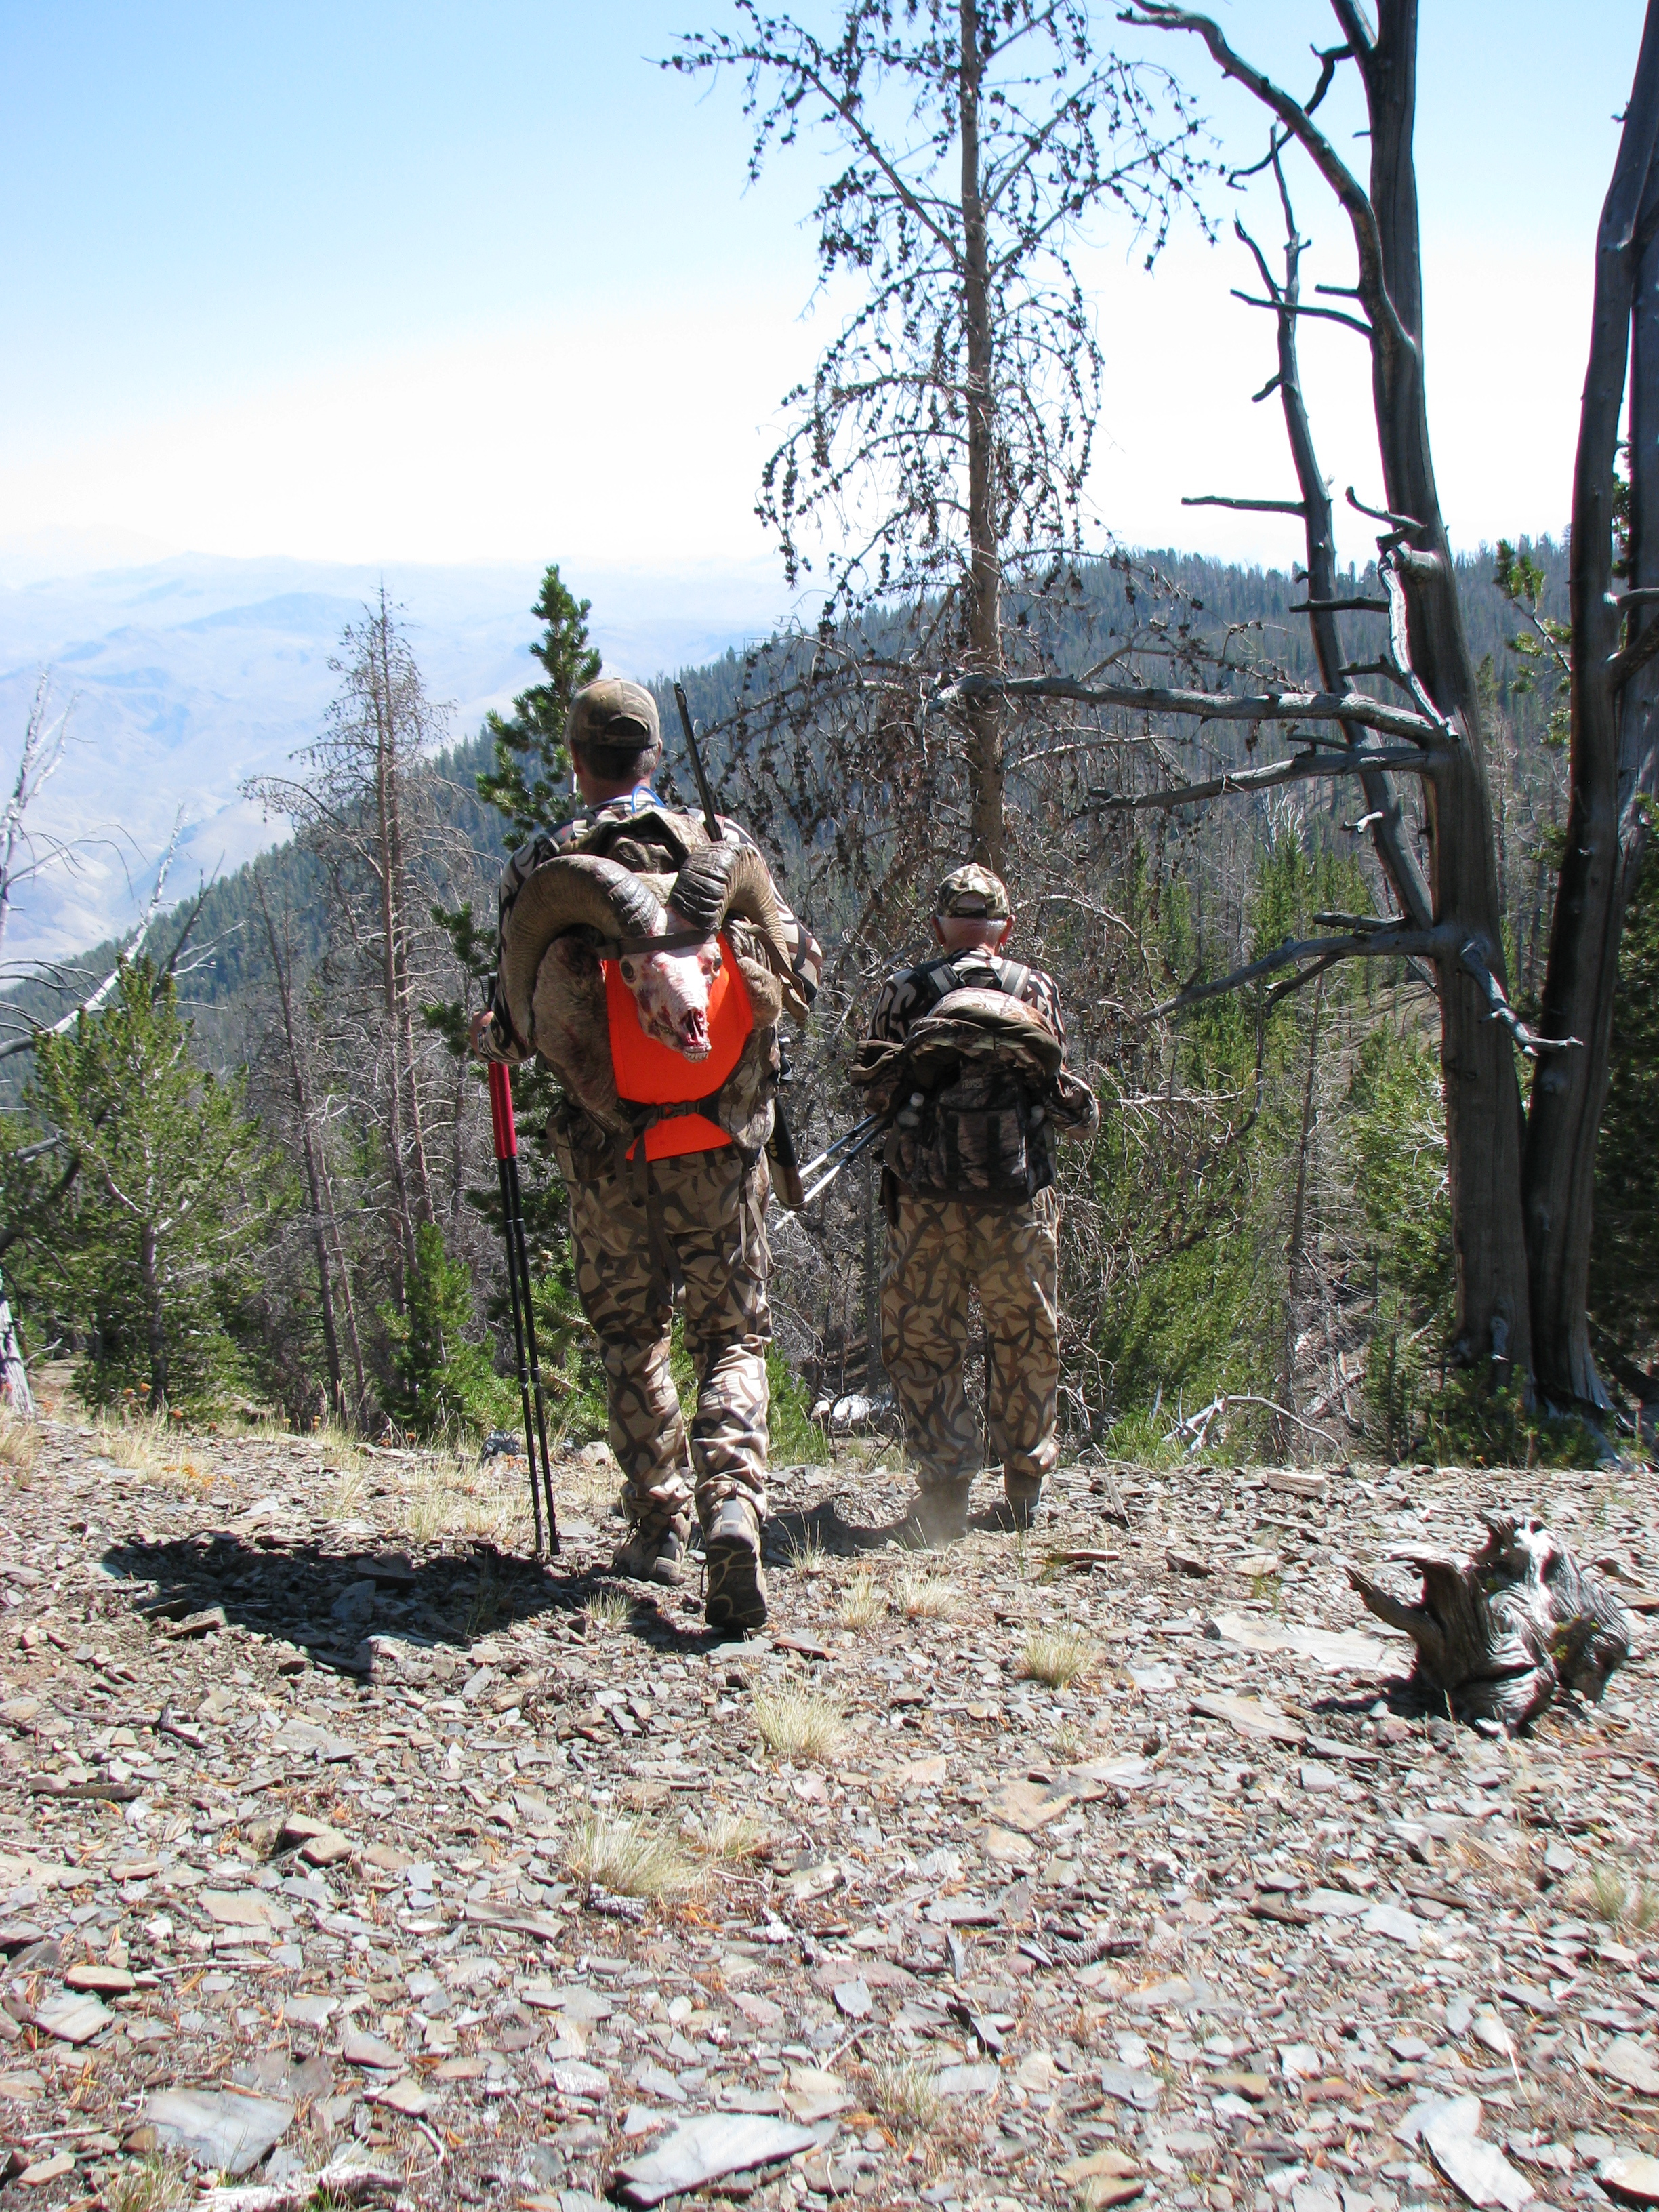 Dealing with Back Issues in the outdoors